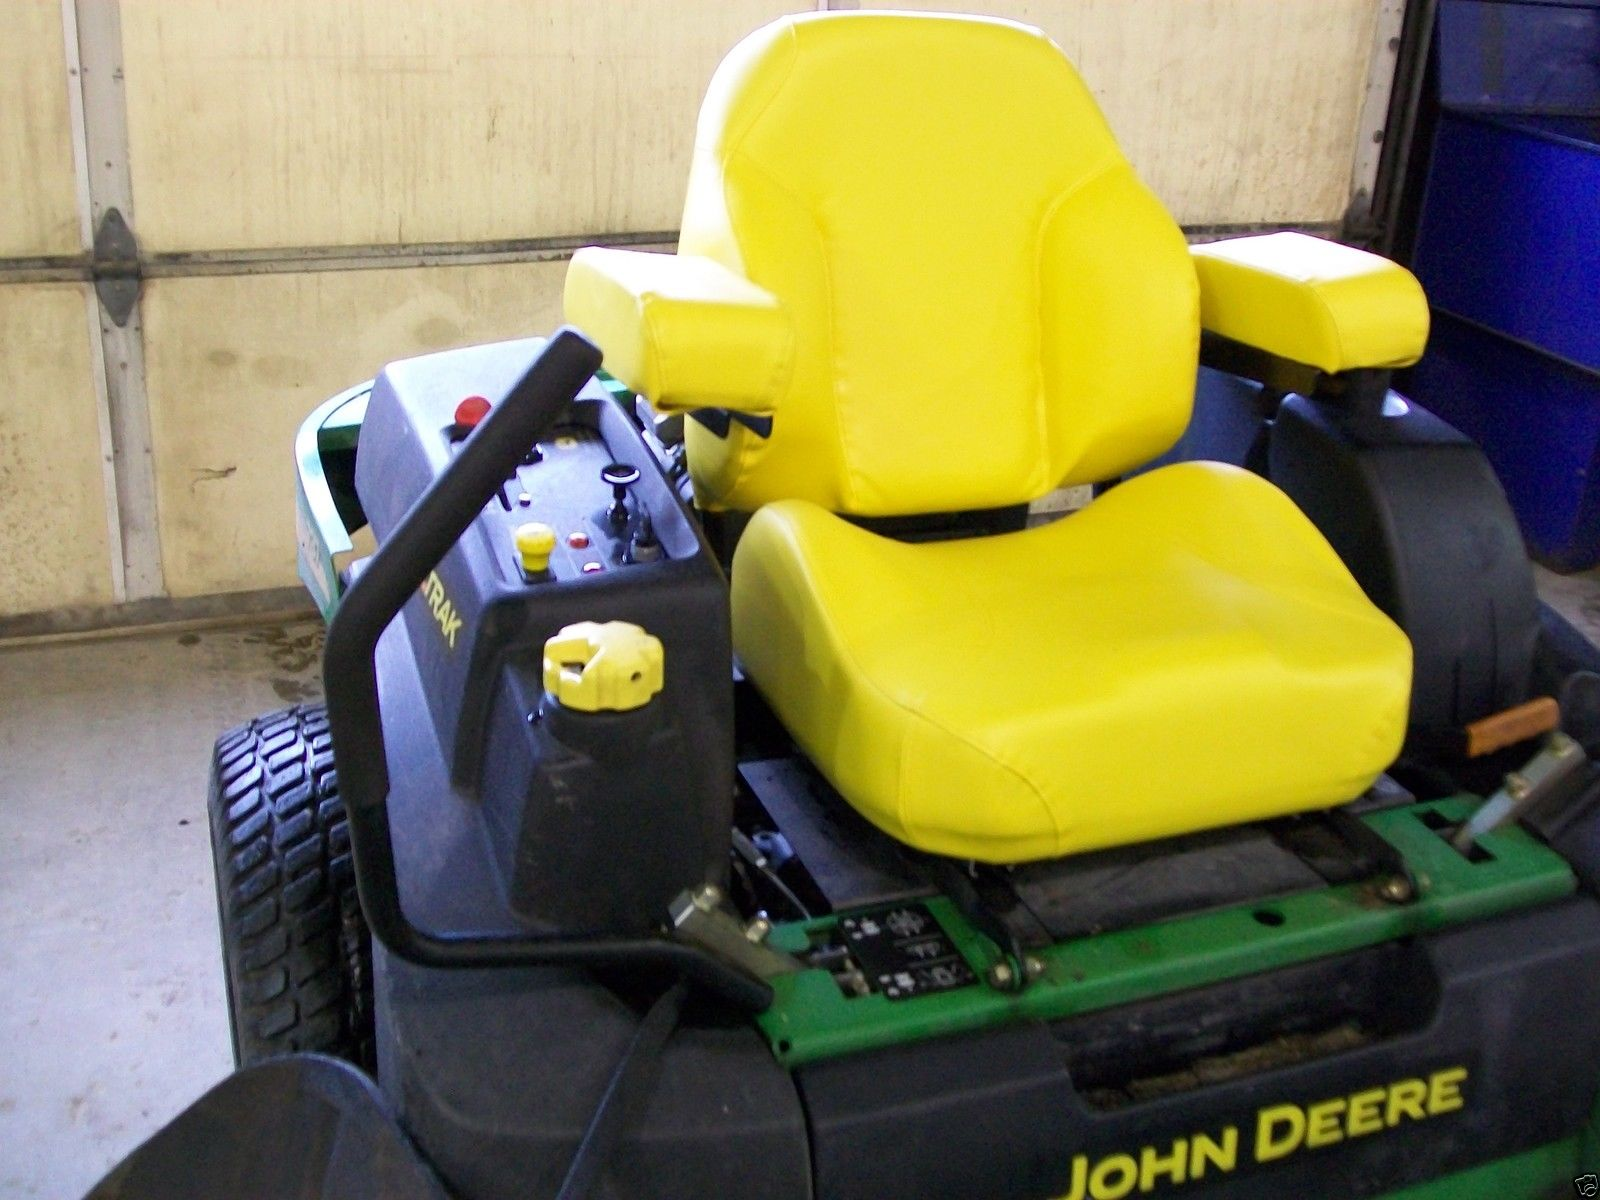 Yellow Comfort King Deluxe Seat John Deere Jd Z Trak Zero Turn 855 Engine Diagram Mowers Ztr Hs